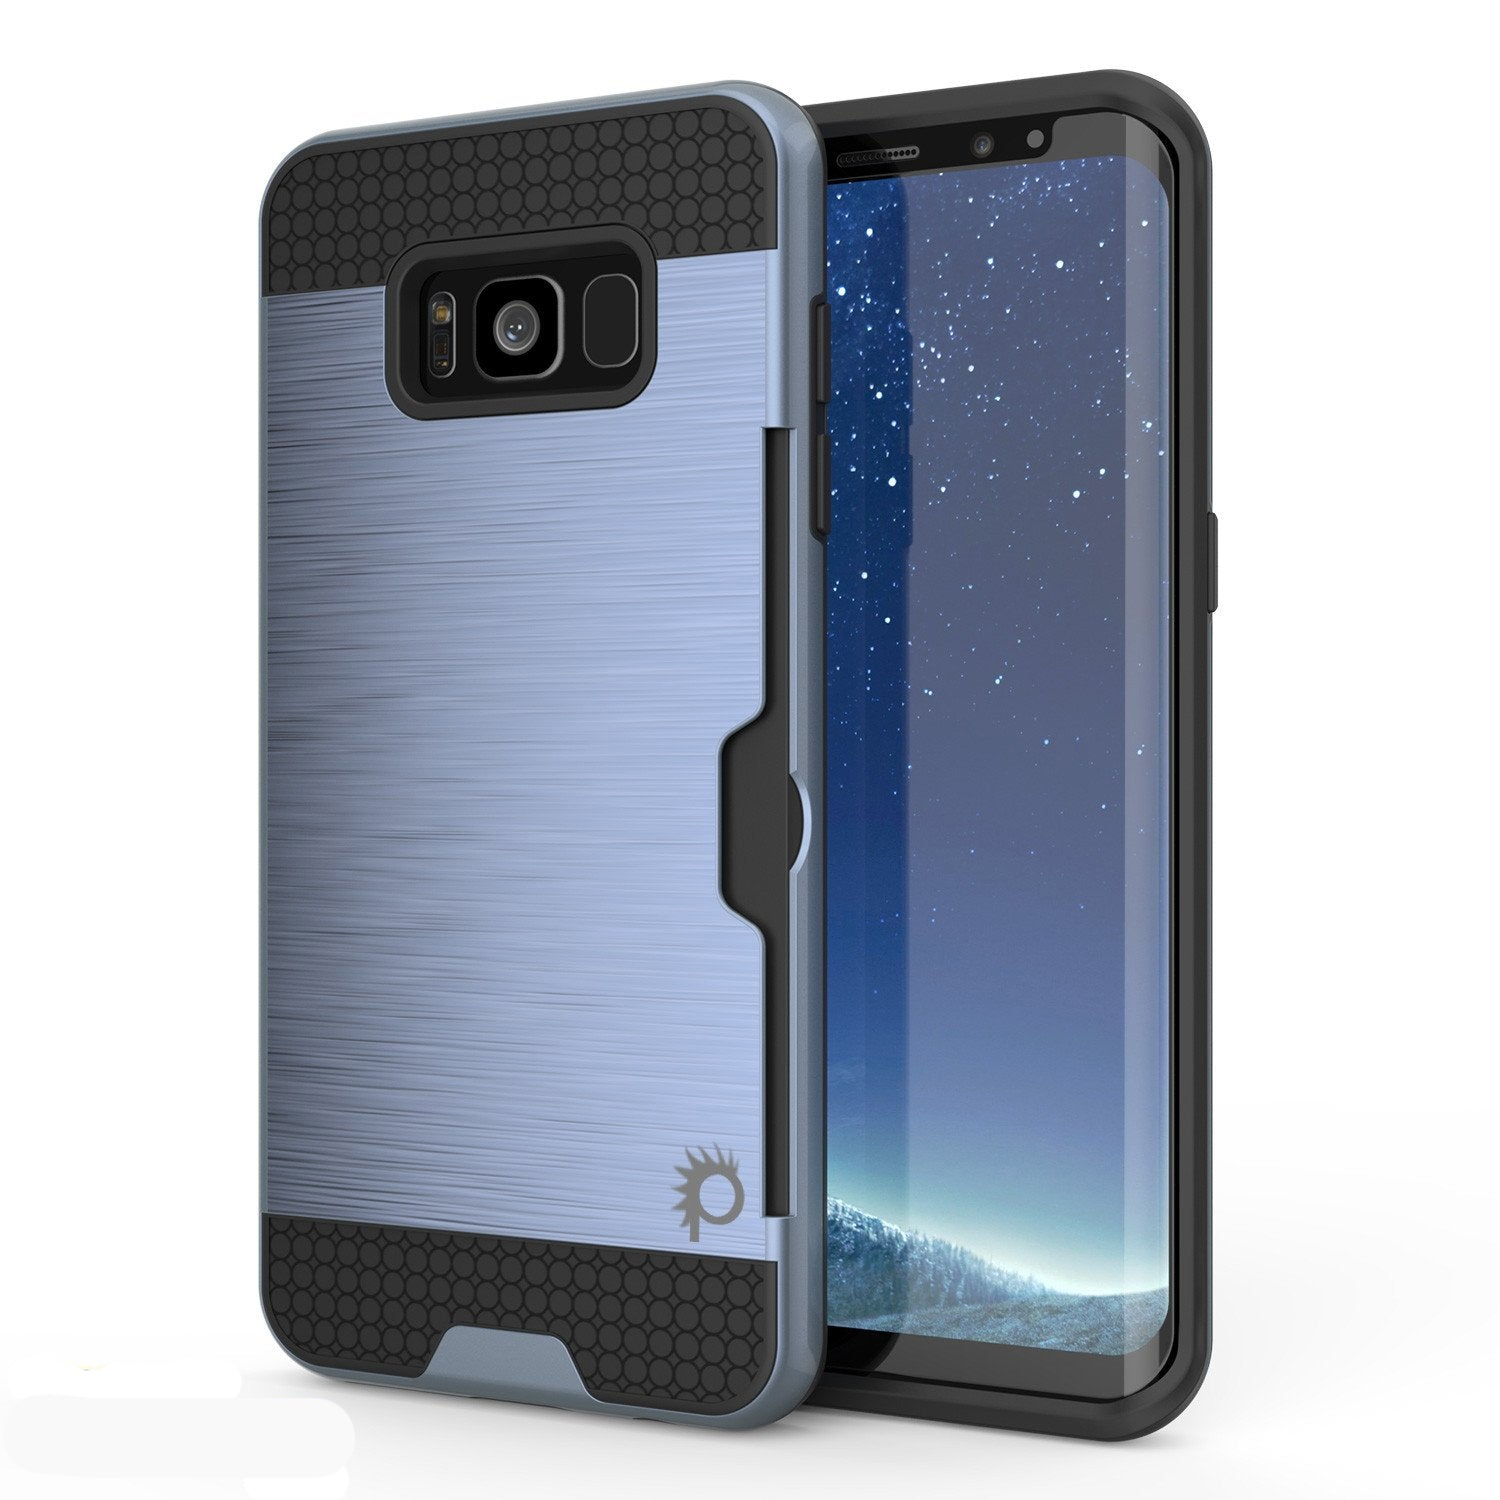 Galaxy S8 Plus Case, PUNKcase [SLOT Series] [Slim Fit] Dual-Layer Armor Cover w/Integrated Anti-Shock System, Credit Card Slot [Navy]